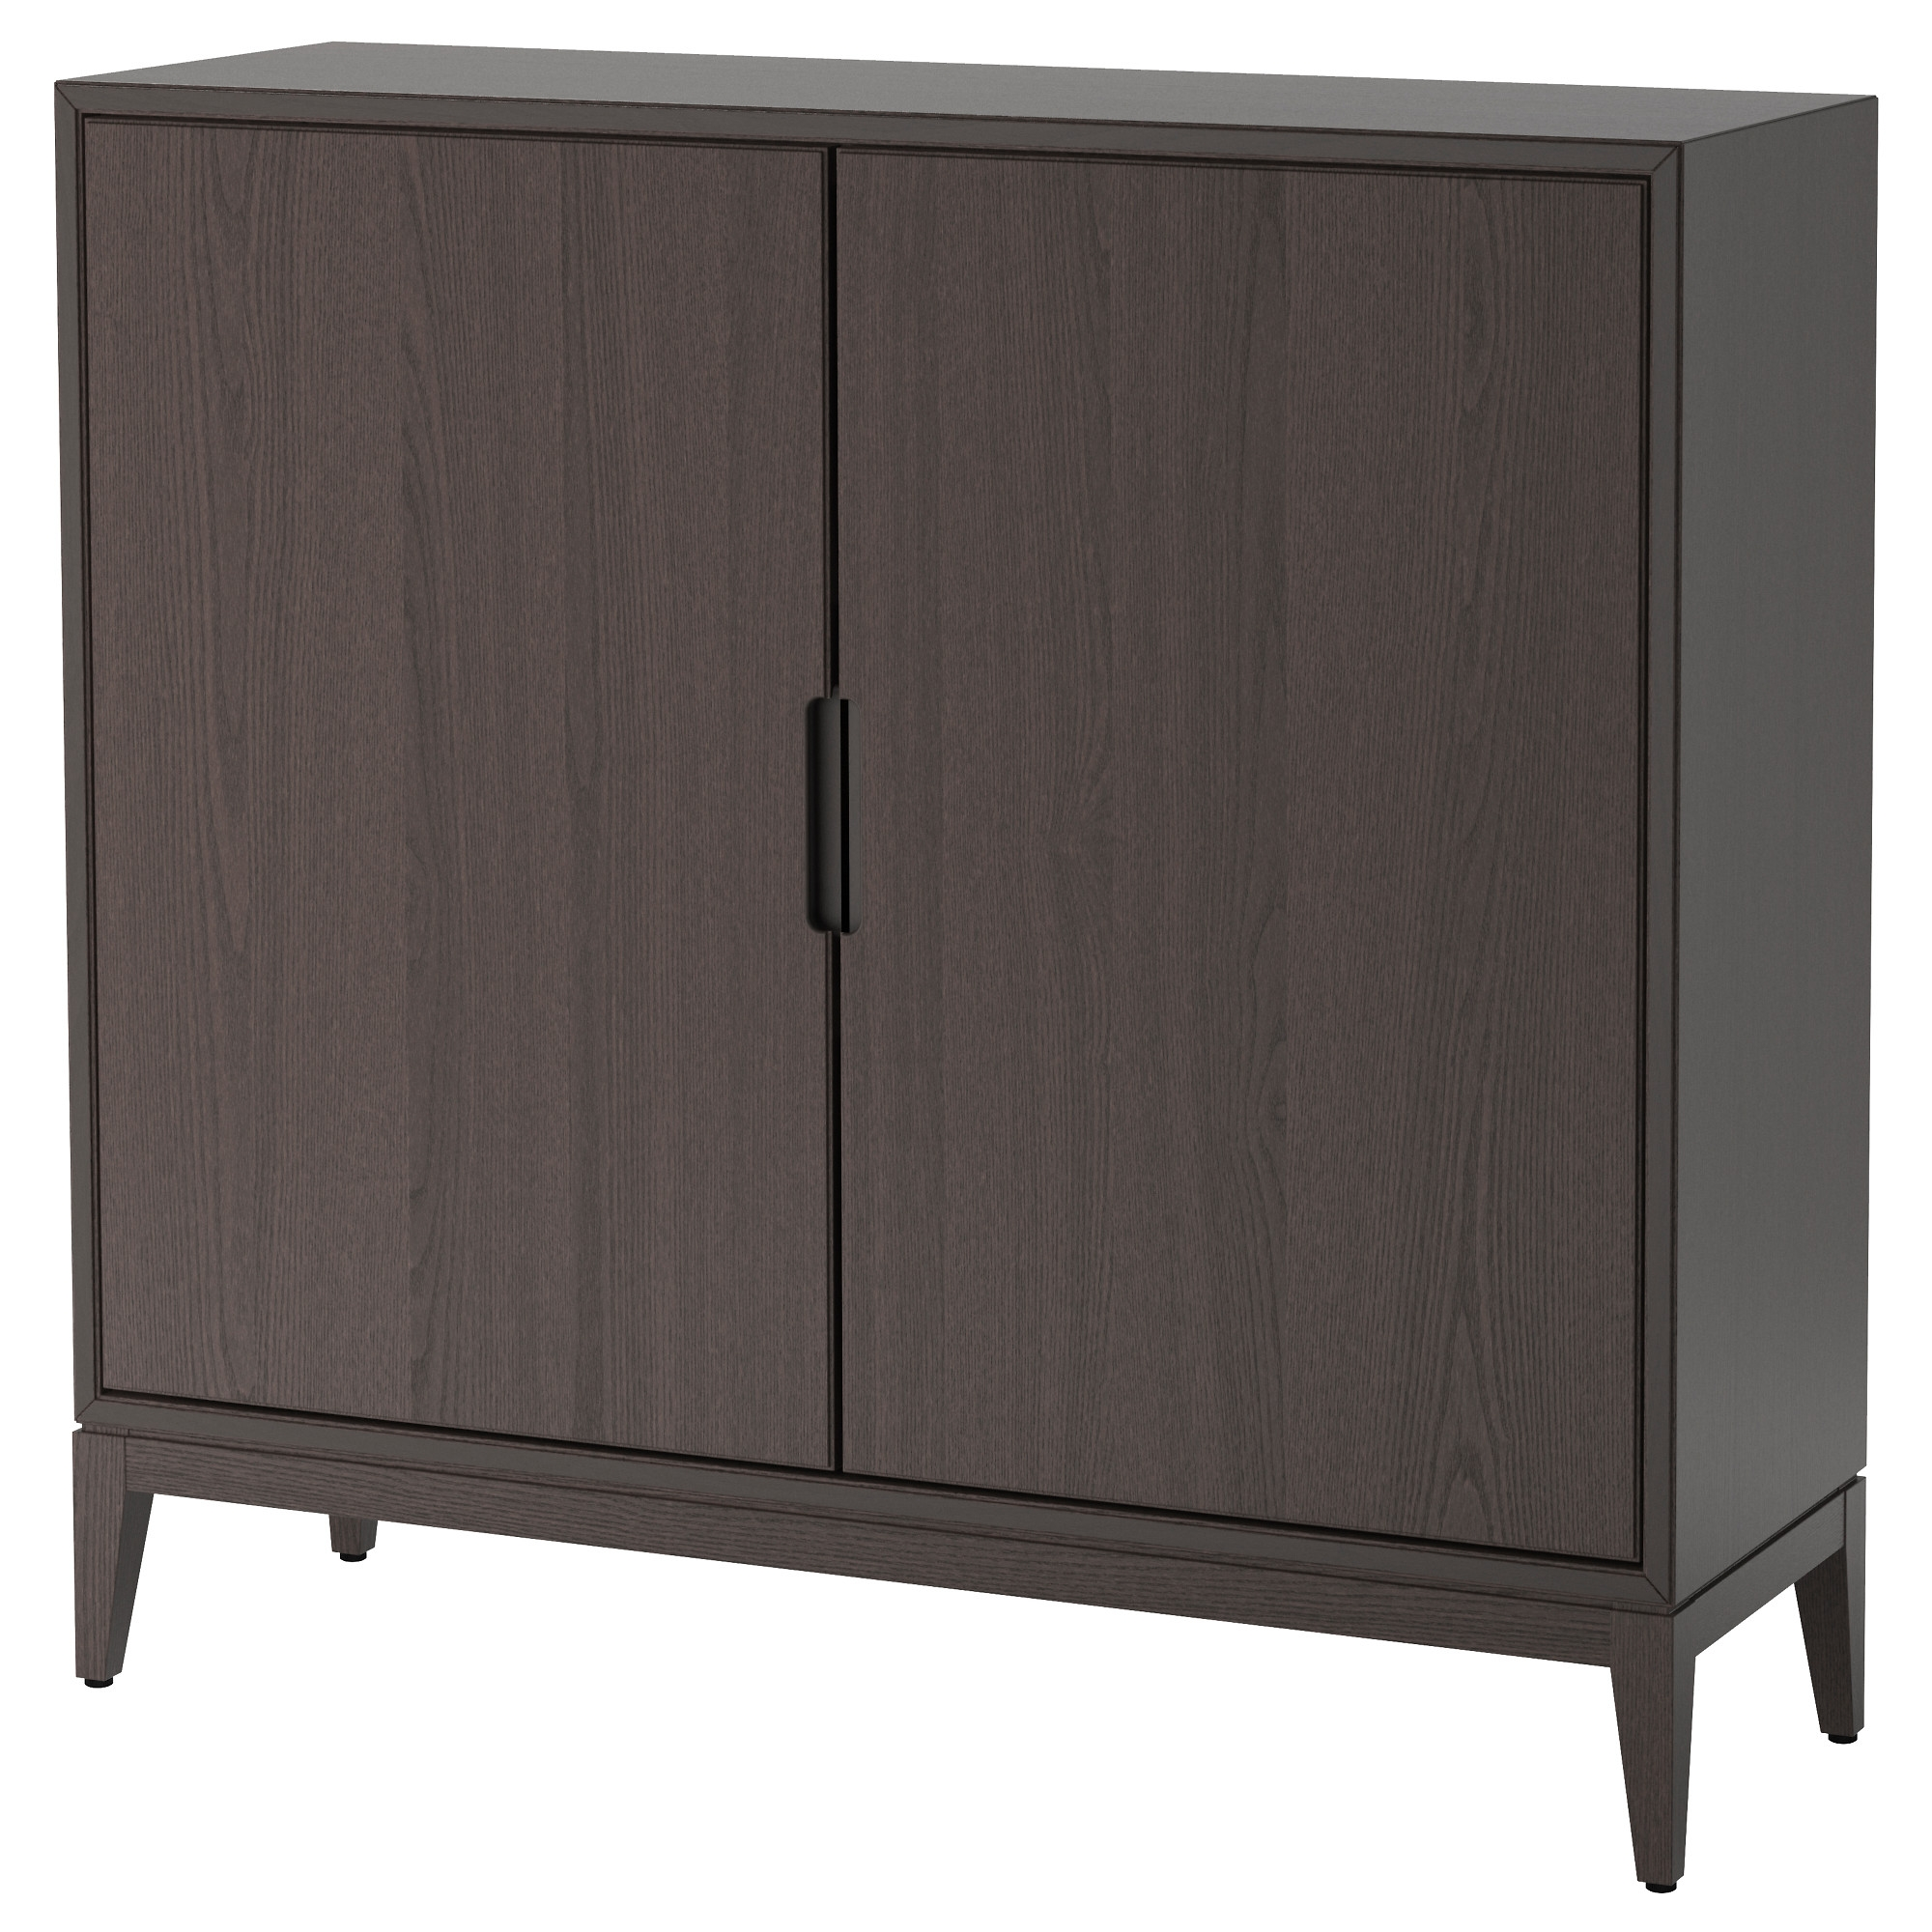 Locking Bar Cabinet Buffet Table Best Home Furniture Decoration Pertaining To Table Cupboards (Image 18 of 25)